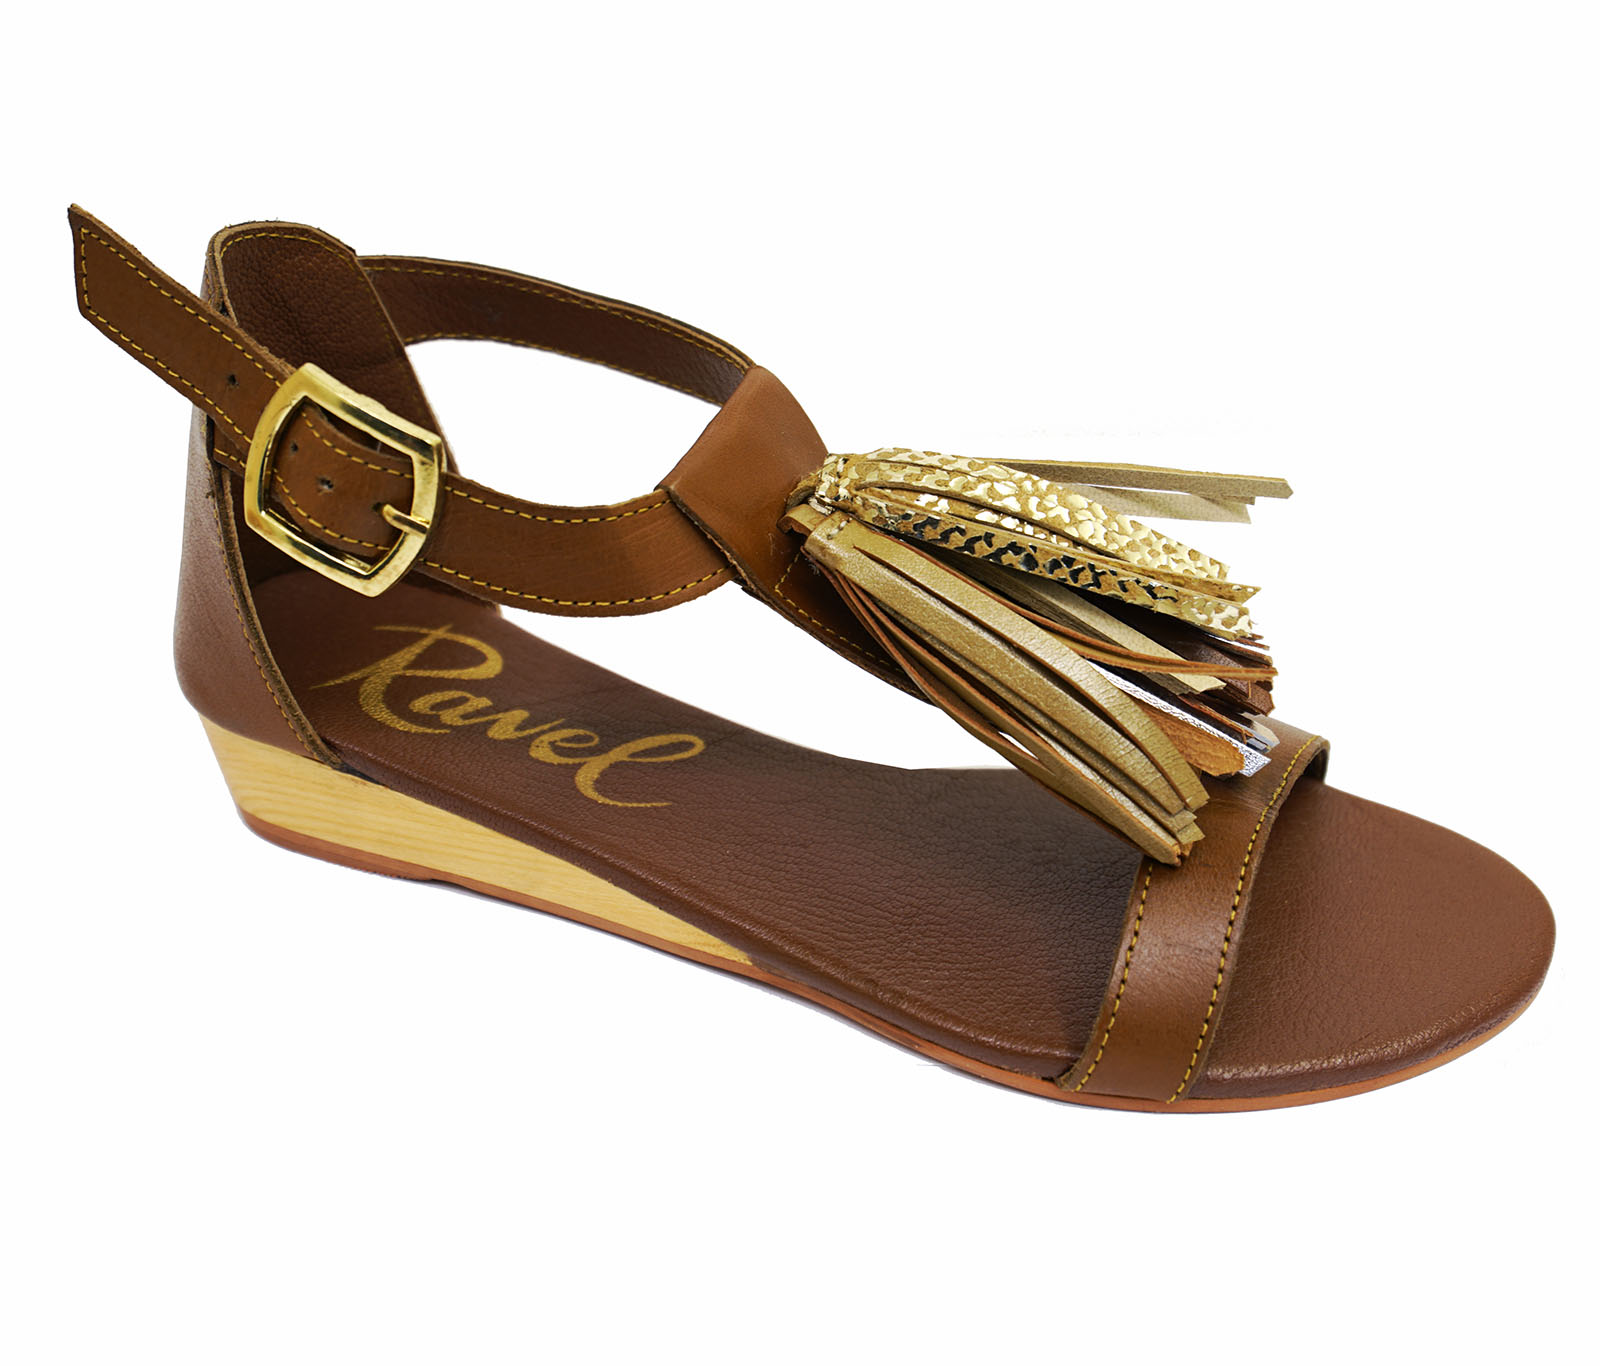 LADIES-RAVEL-ASTORIA-FLAT-LEATHER-TAN-SANDALS-SLIP-ON-T-BAR-STRAPPY-SHOES-UK-3-8 thumbnail 15